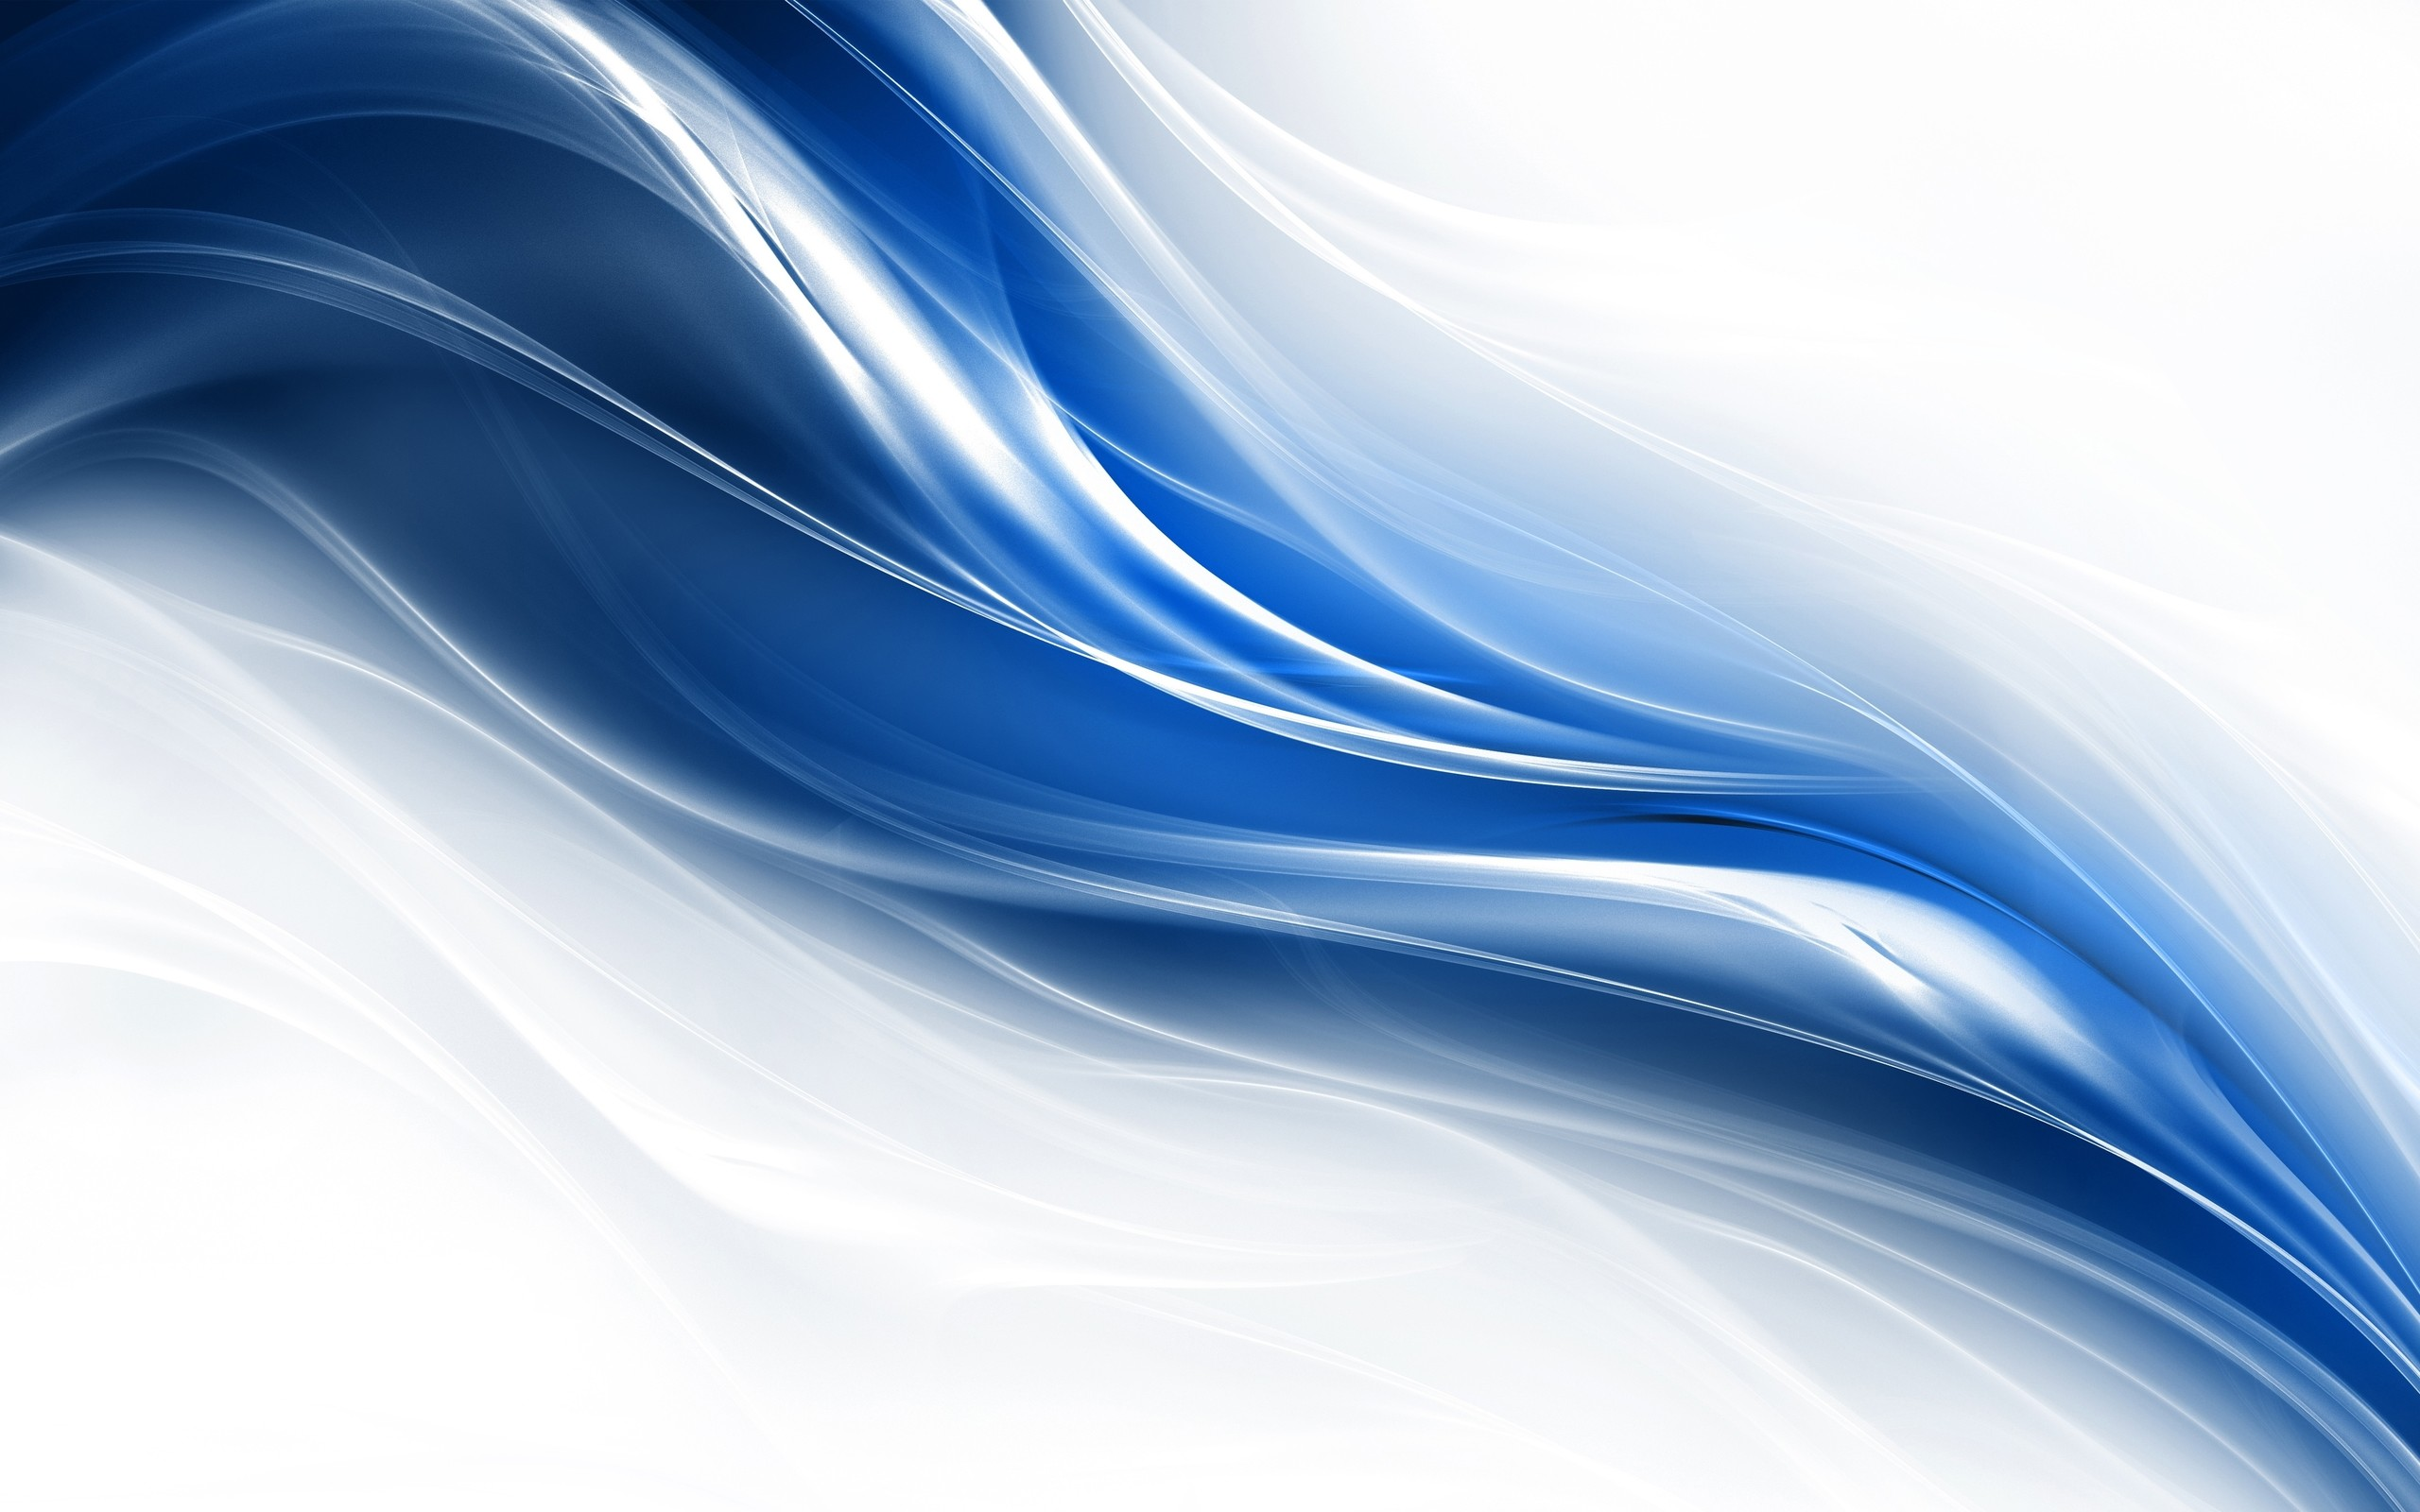 2560x1600 Backgrounds For Blue Wave Transparent Background www 2560×1600